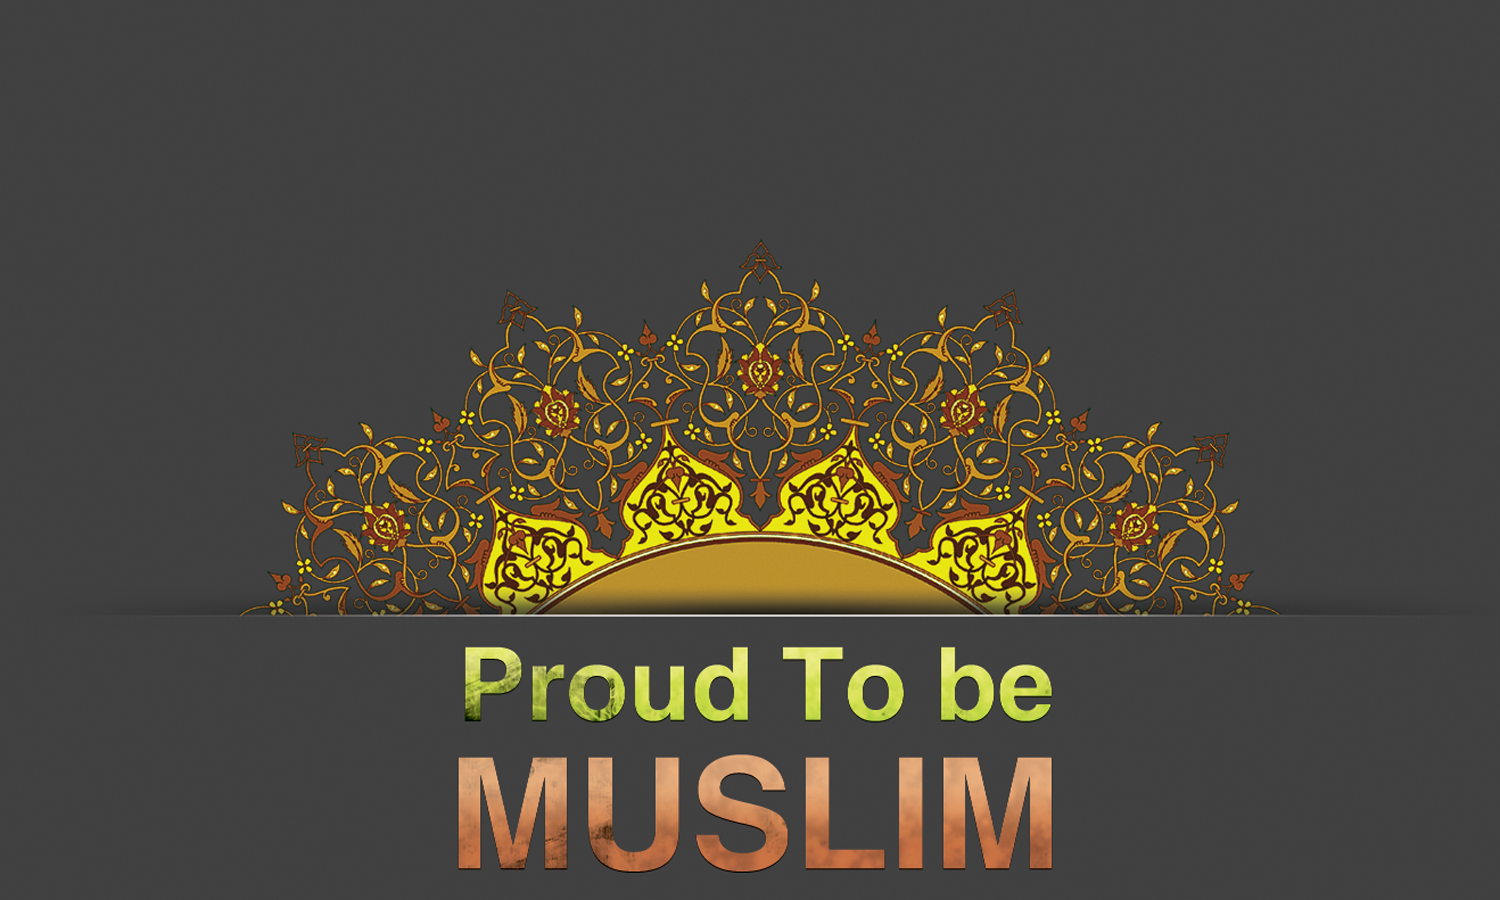 proud to be muslim